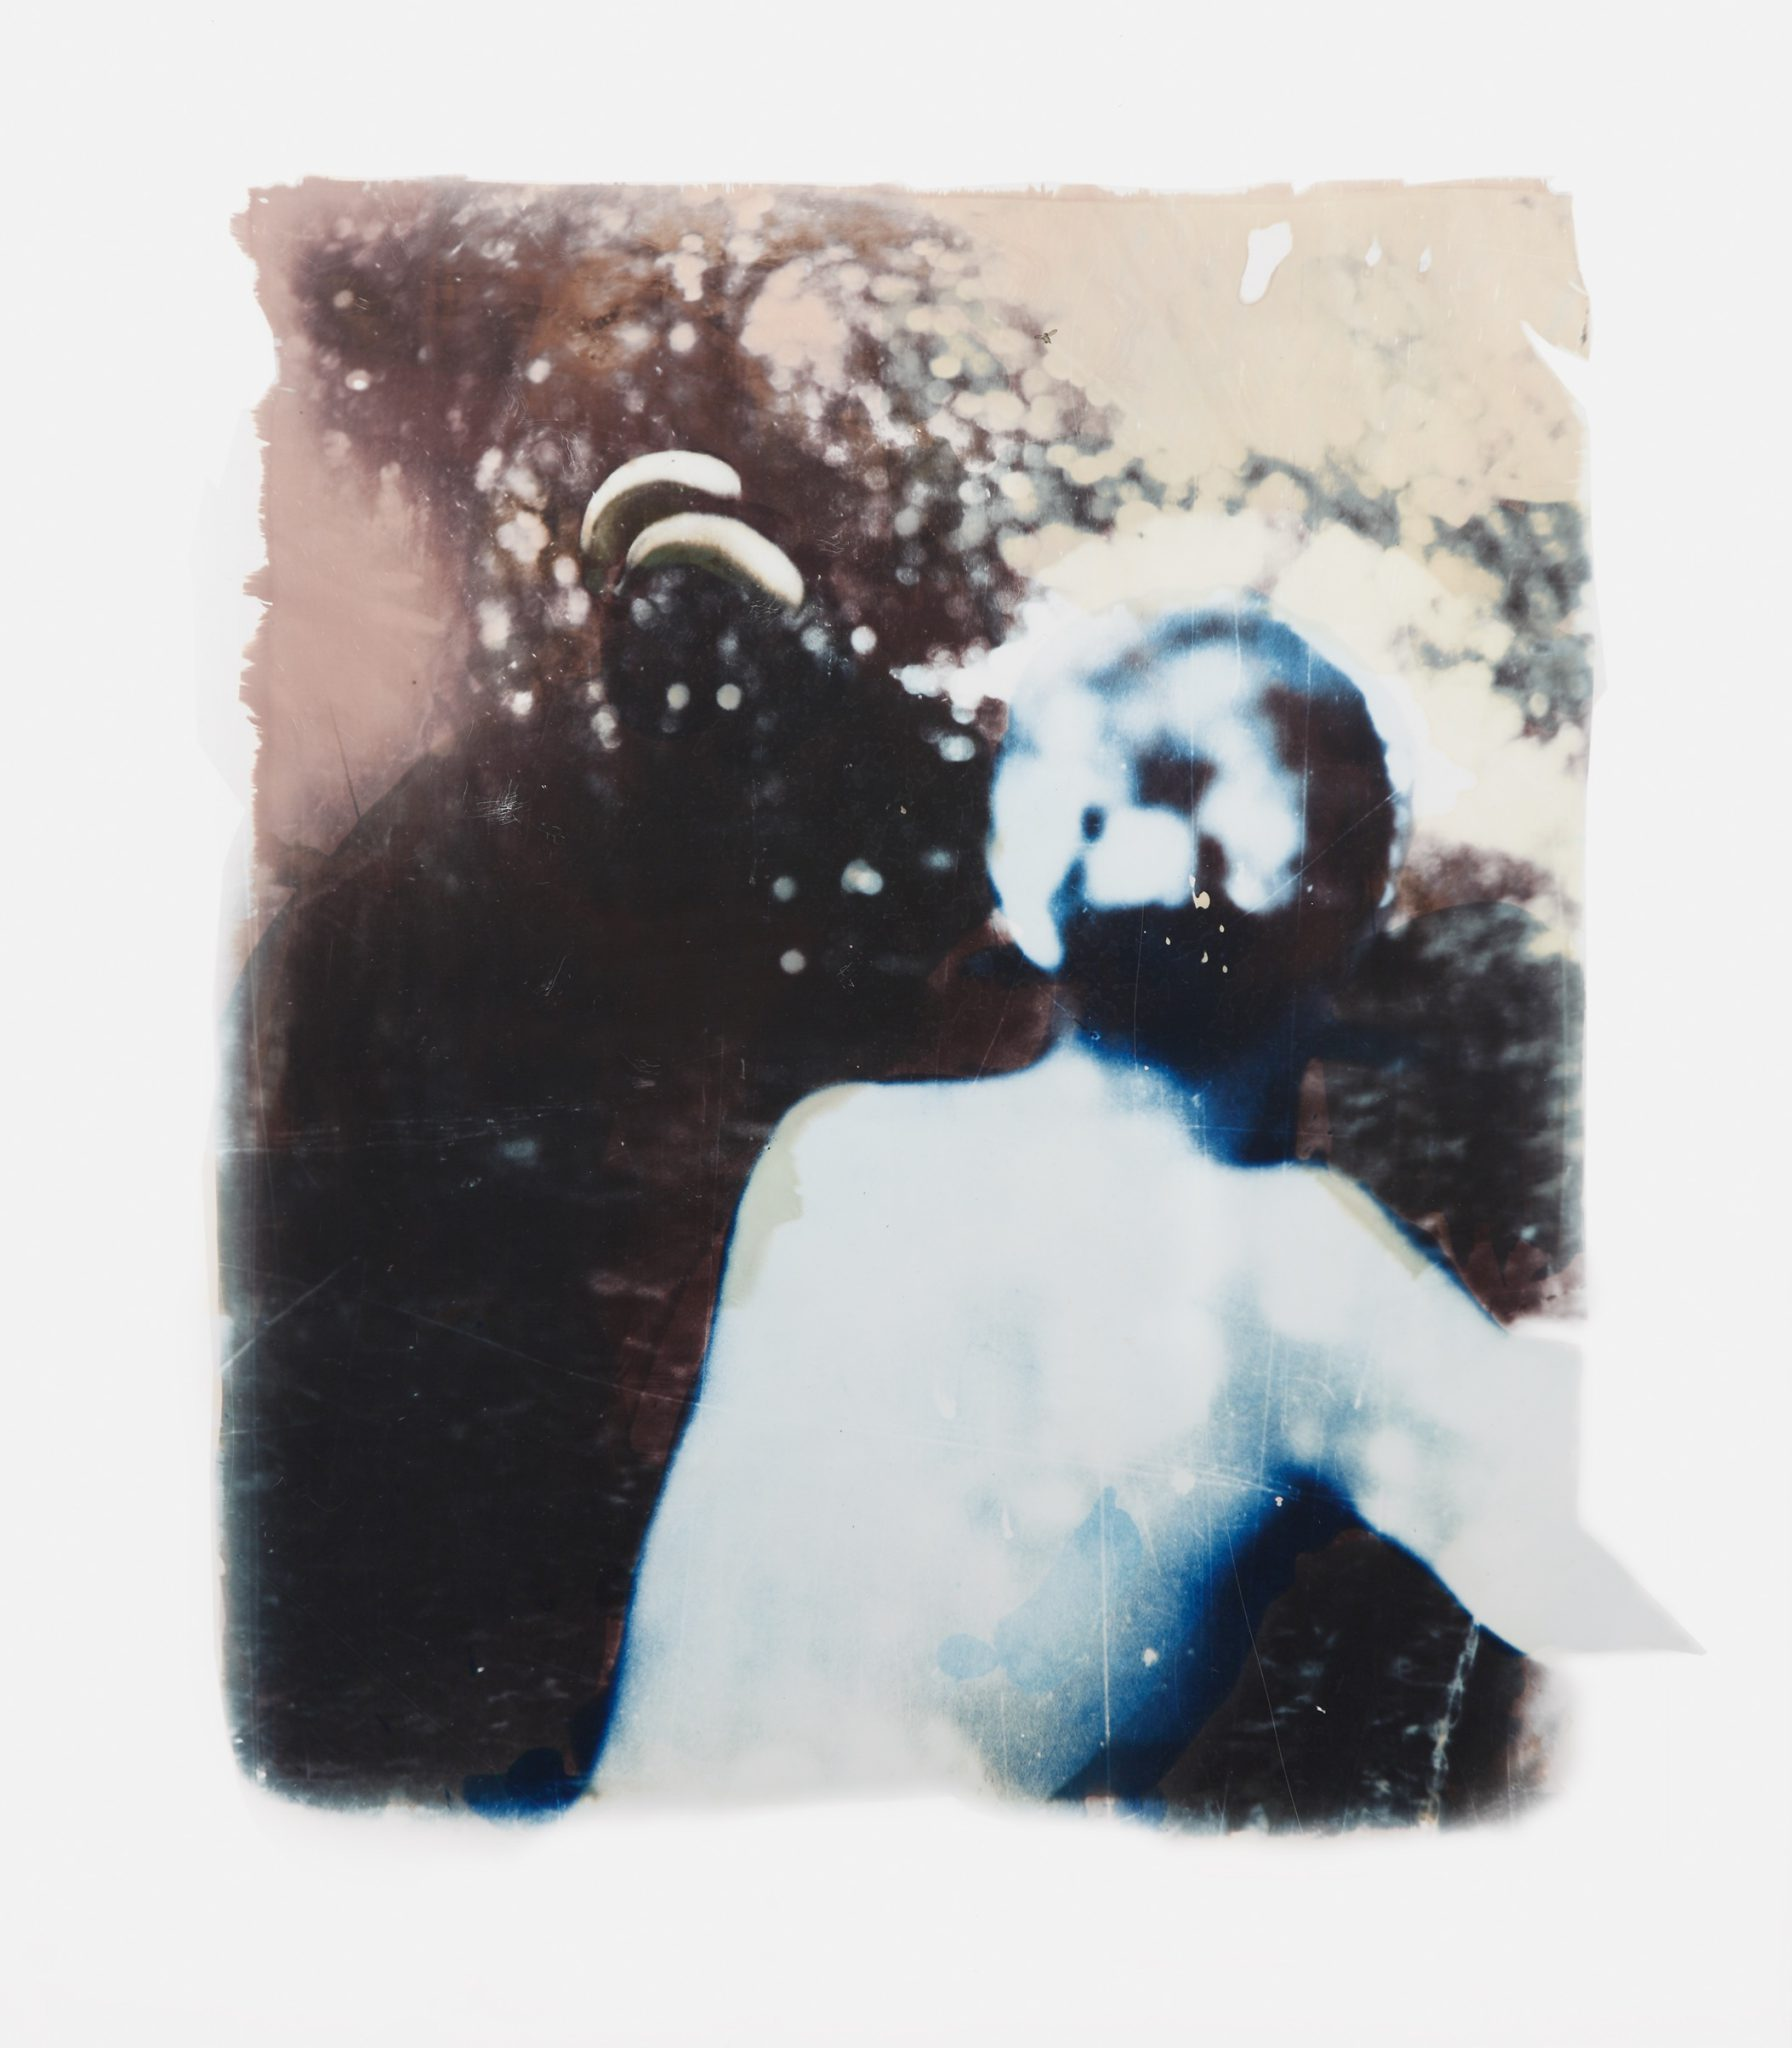 Rückenakt (Nude from the back), 1975, b/w photograph on Baryt paper, coloured, approx. 49 x 42 cm